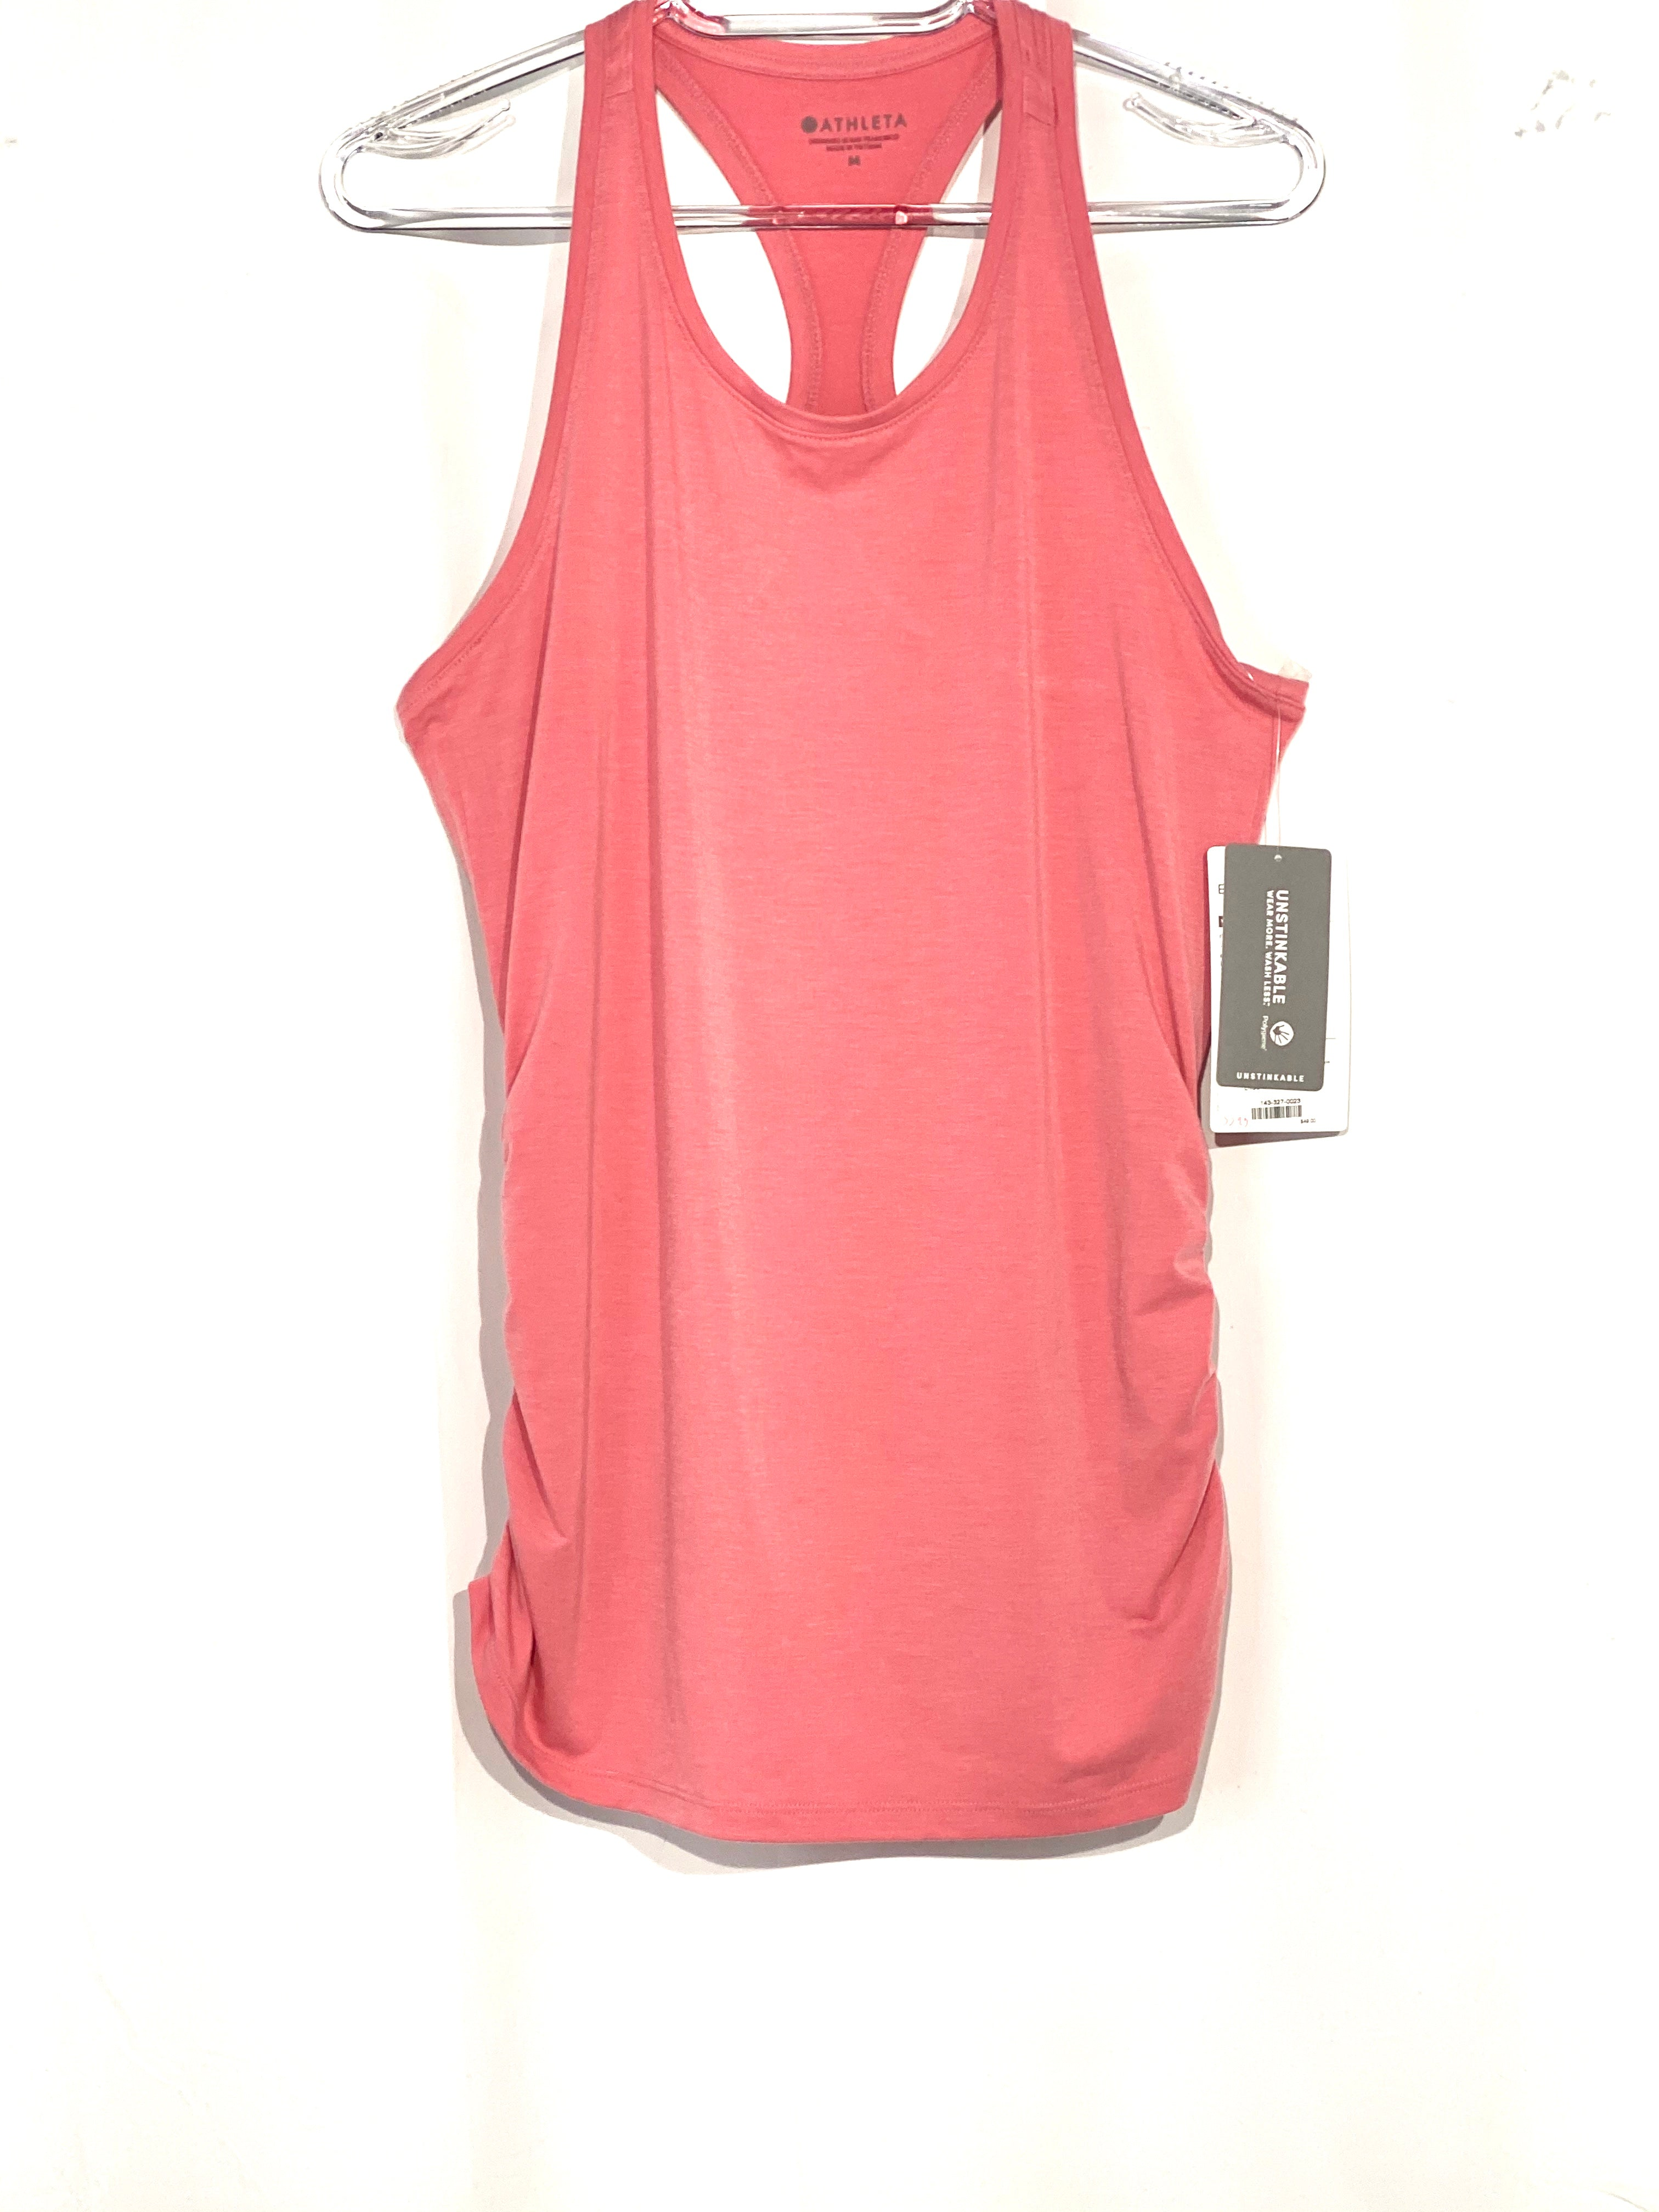 Primary Photo - BRAND: ATHLETA <BR>STYLE: ATHLETIC TANK TOP <BR>COLOR: DUSTY PINK <BR>SIZE: M <BR>SKU: 262-26275-64691